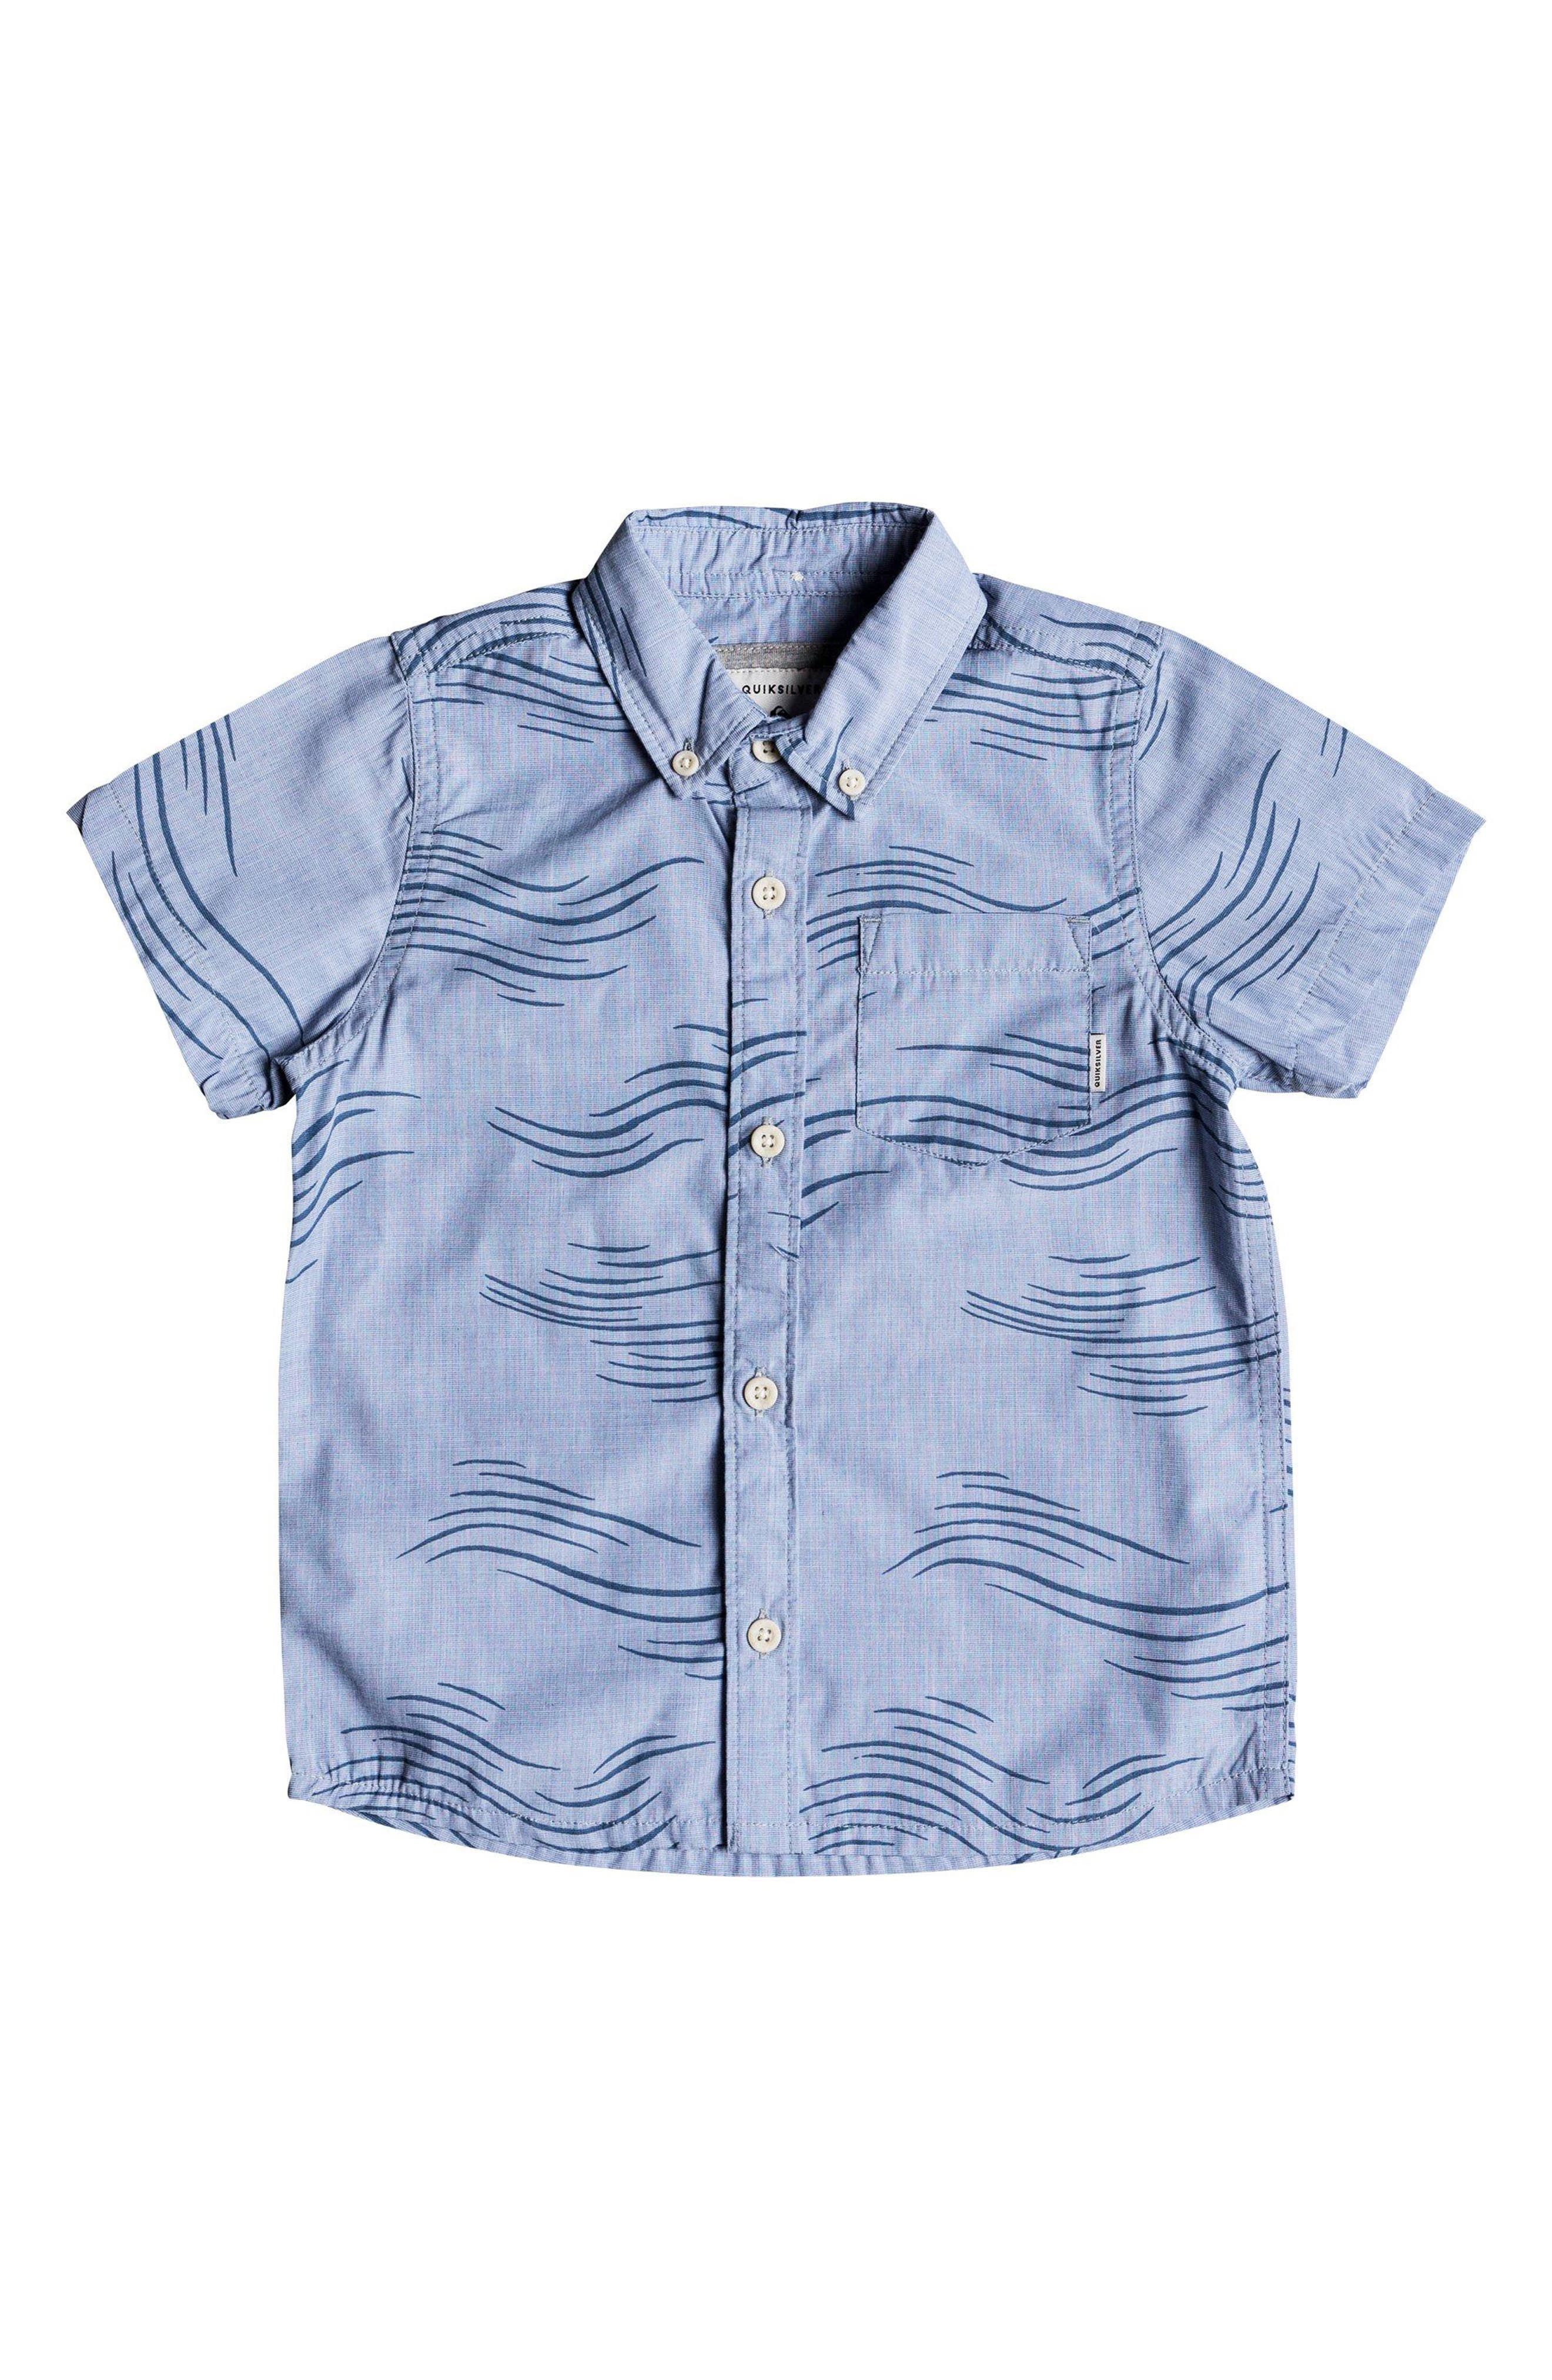 Valley Groove Woven Shirt,                         Main,                         color, Bijou Blue